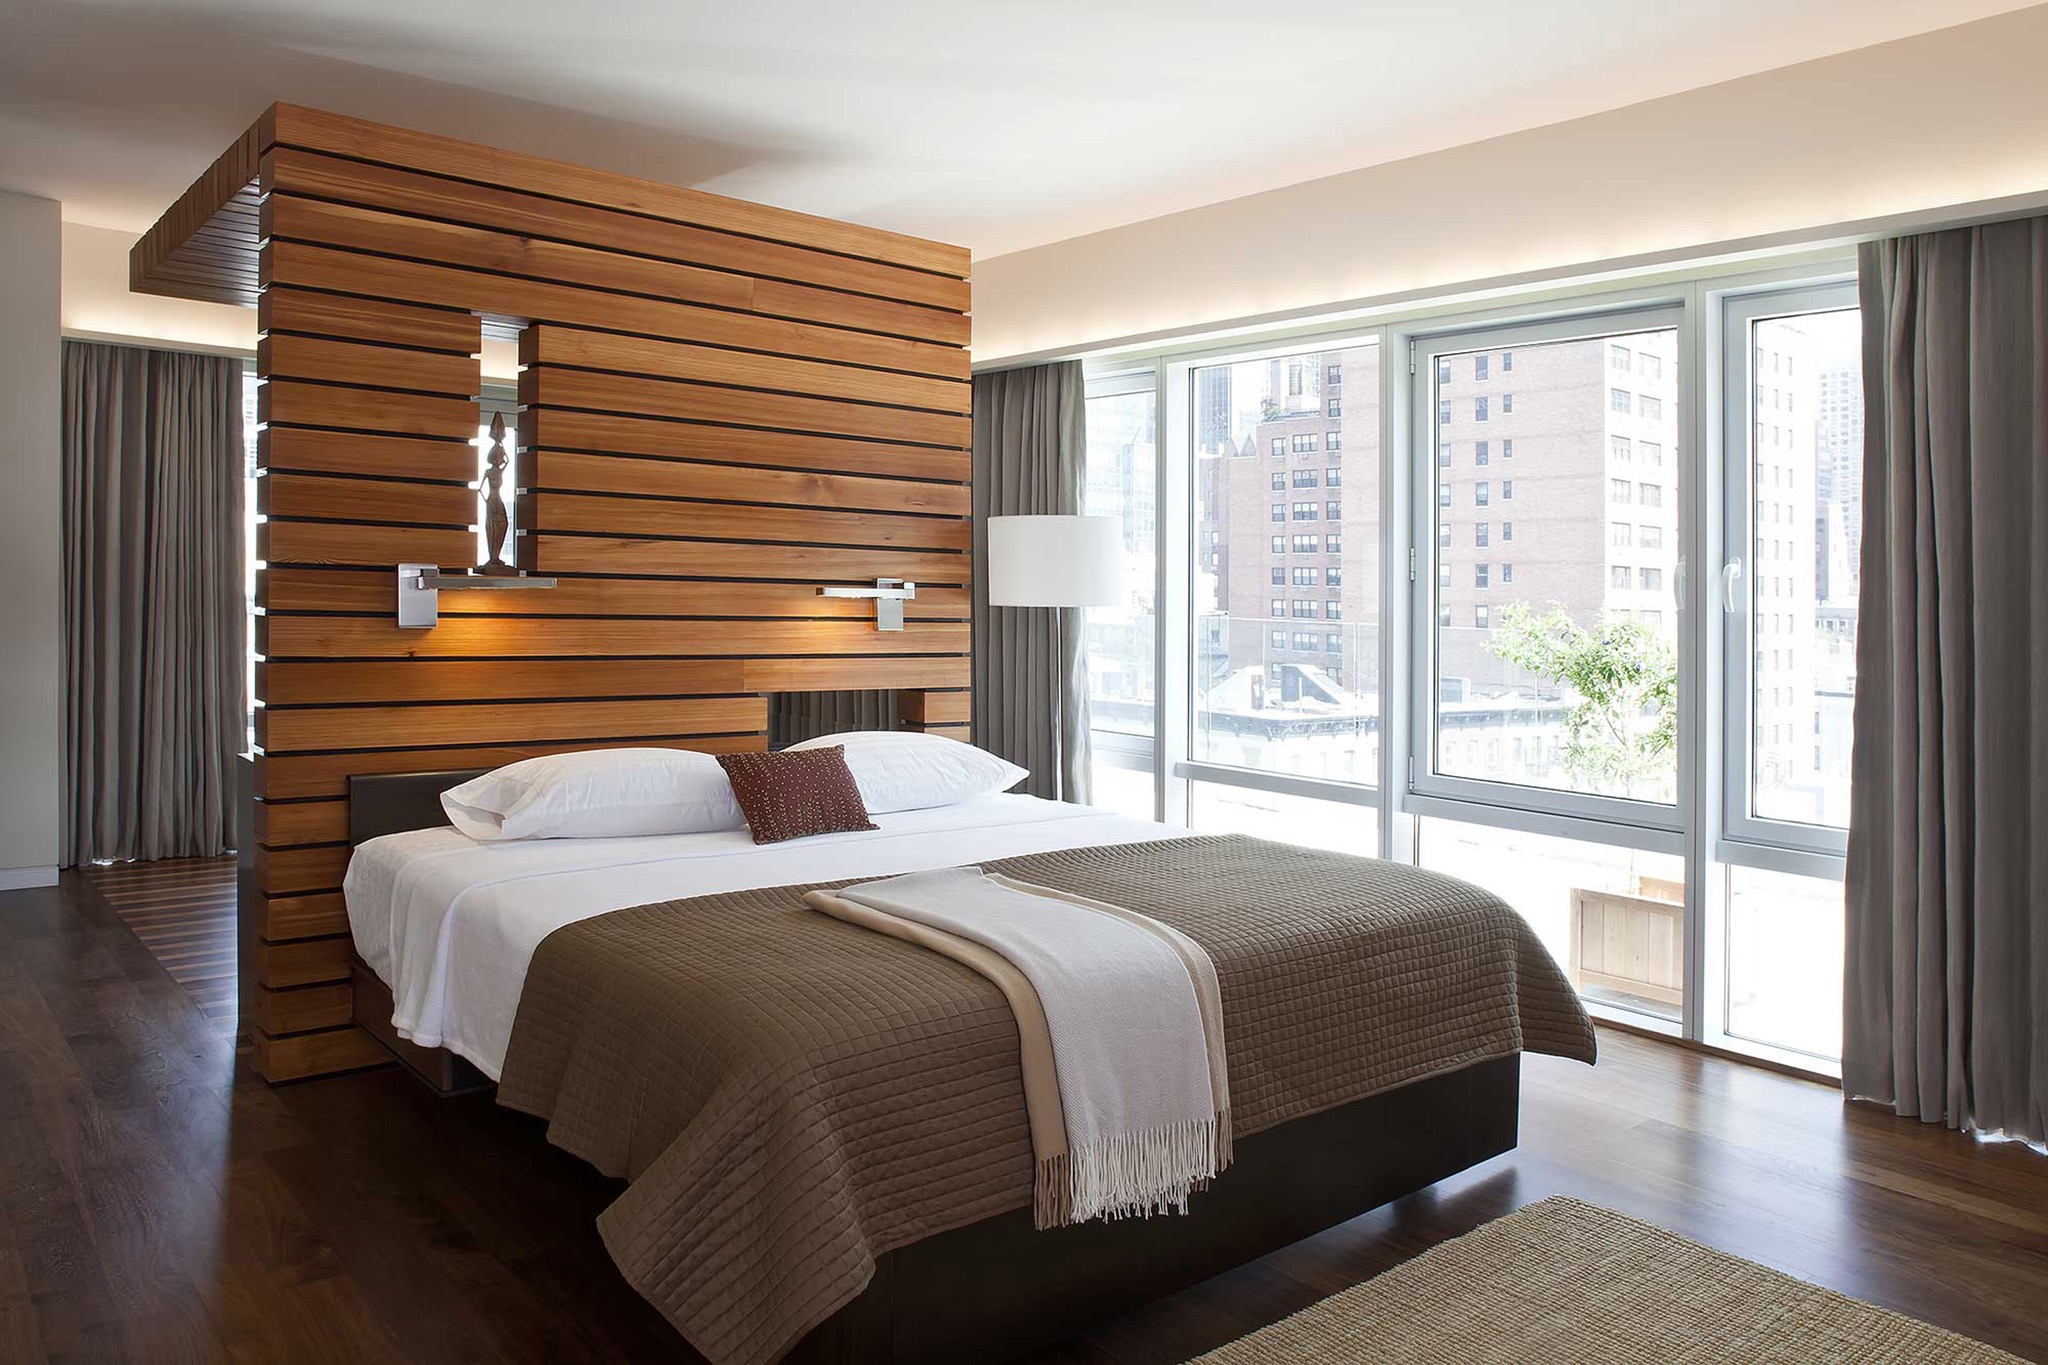 Urban Modern Apartment Bedroom With Wood Slat Partition Wall (Photo 19 of 19)